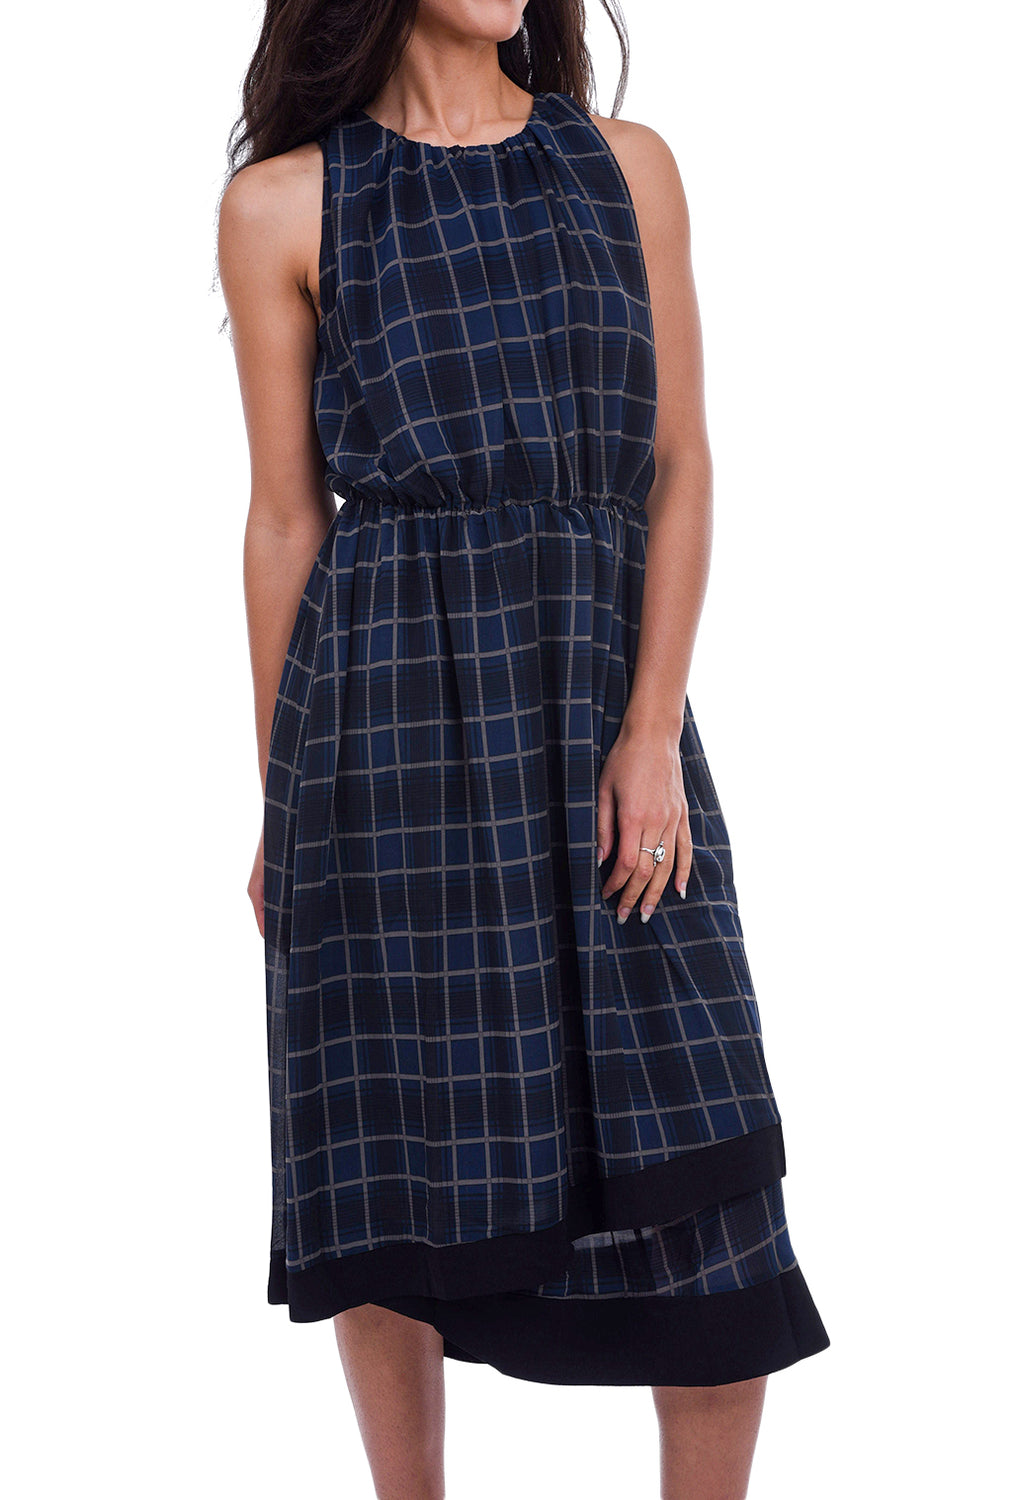 Current Air Gathered Check Dress, Navy